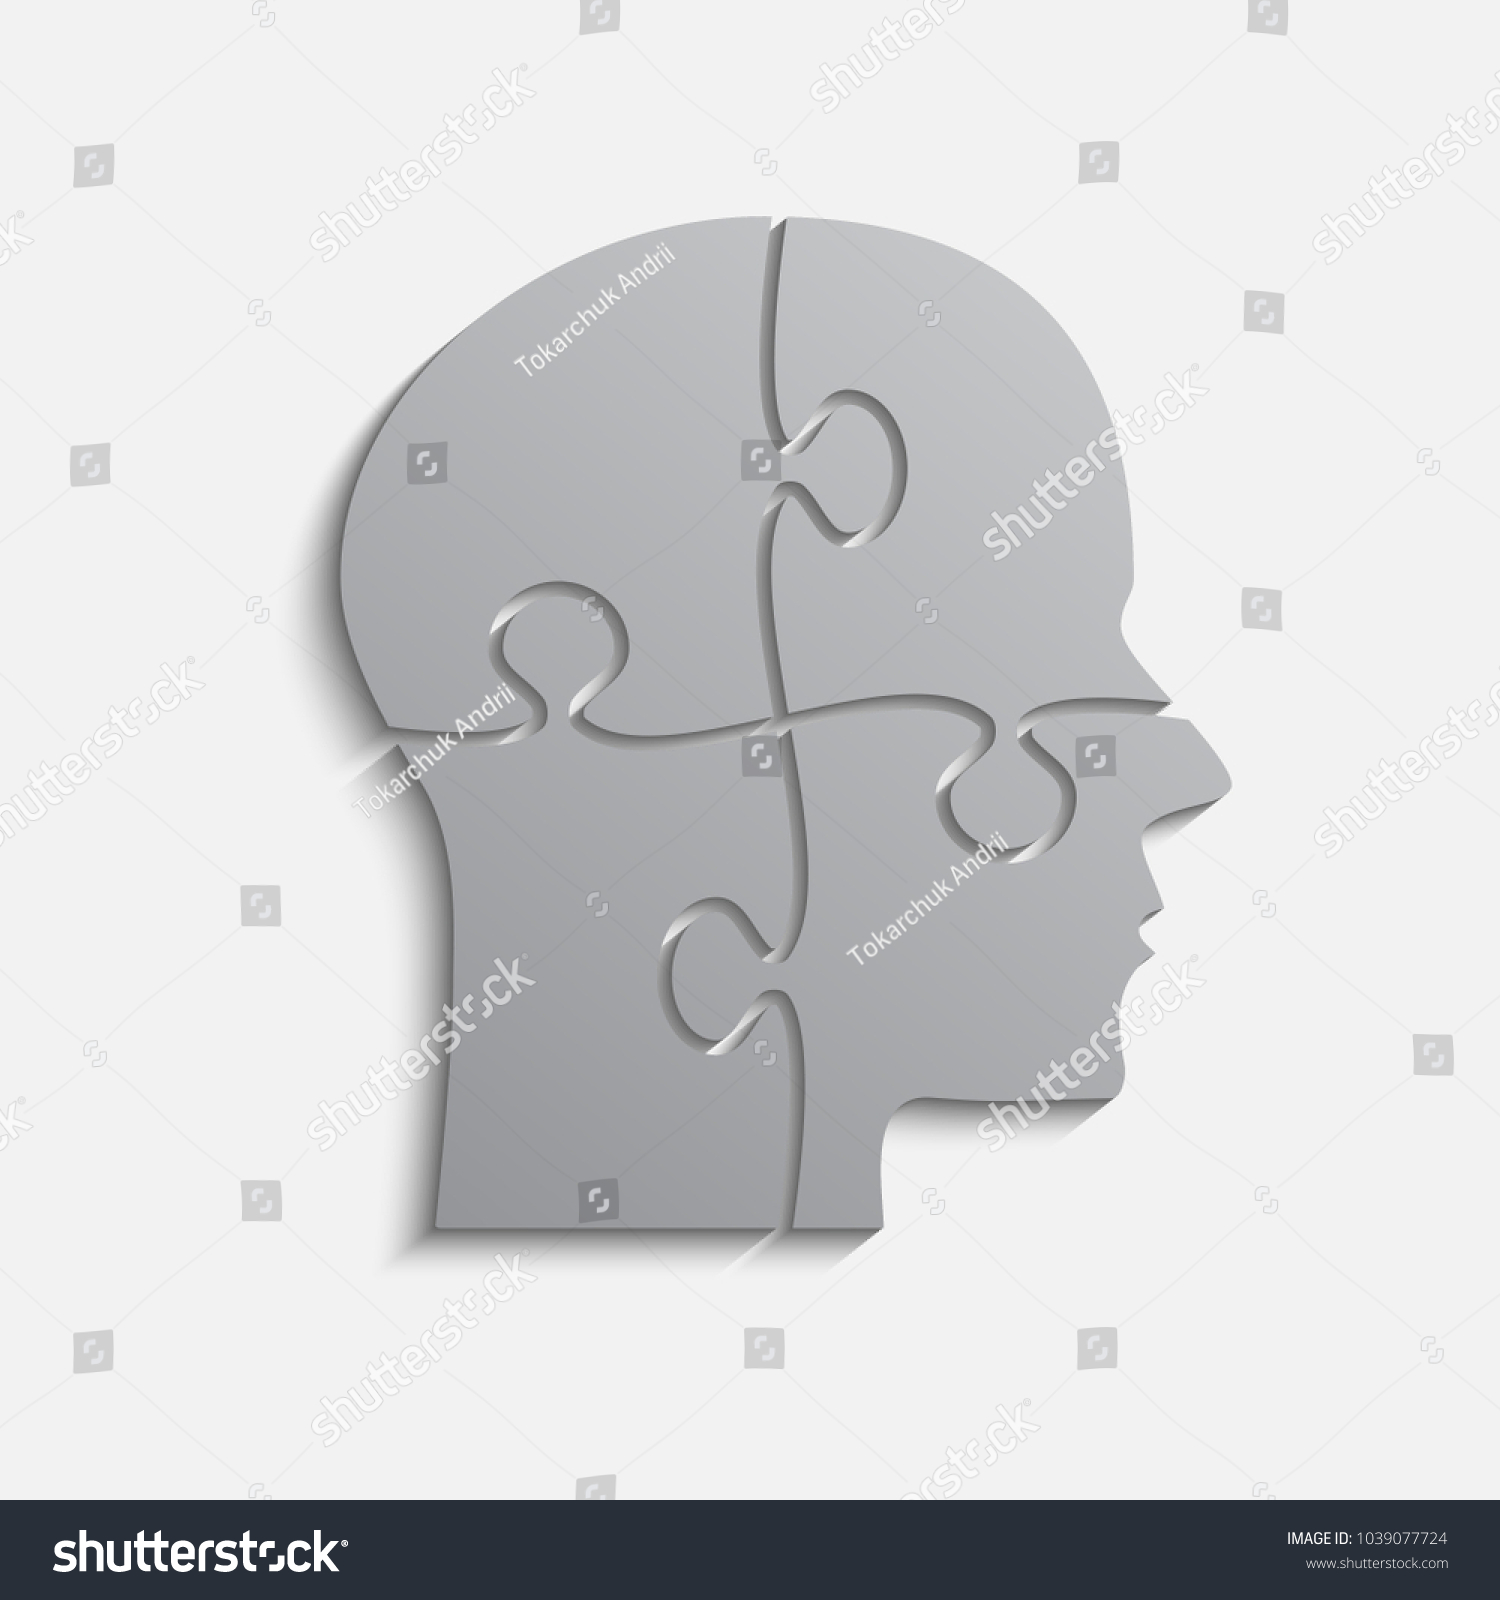 Grey Puzzle Piece Silhouette Head Vector Stock Photo (Photo, Vector ...